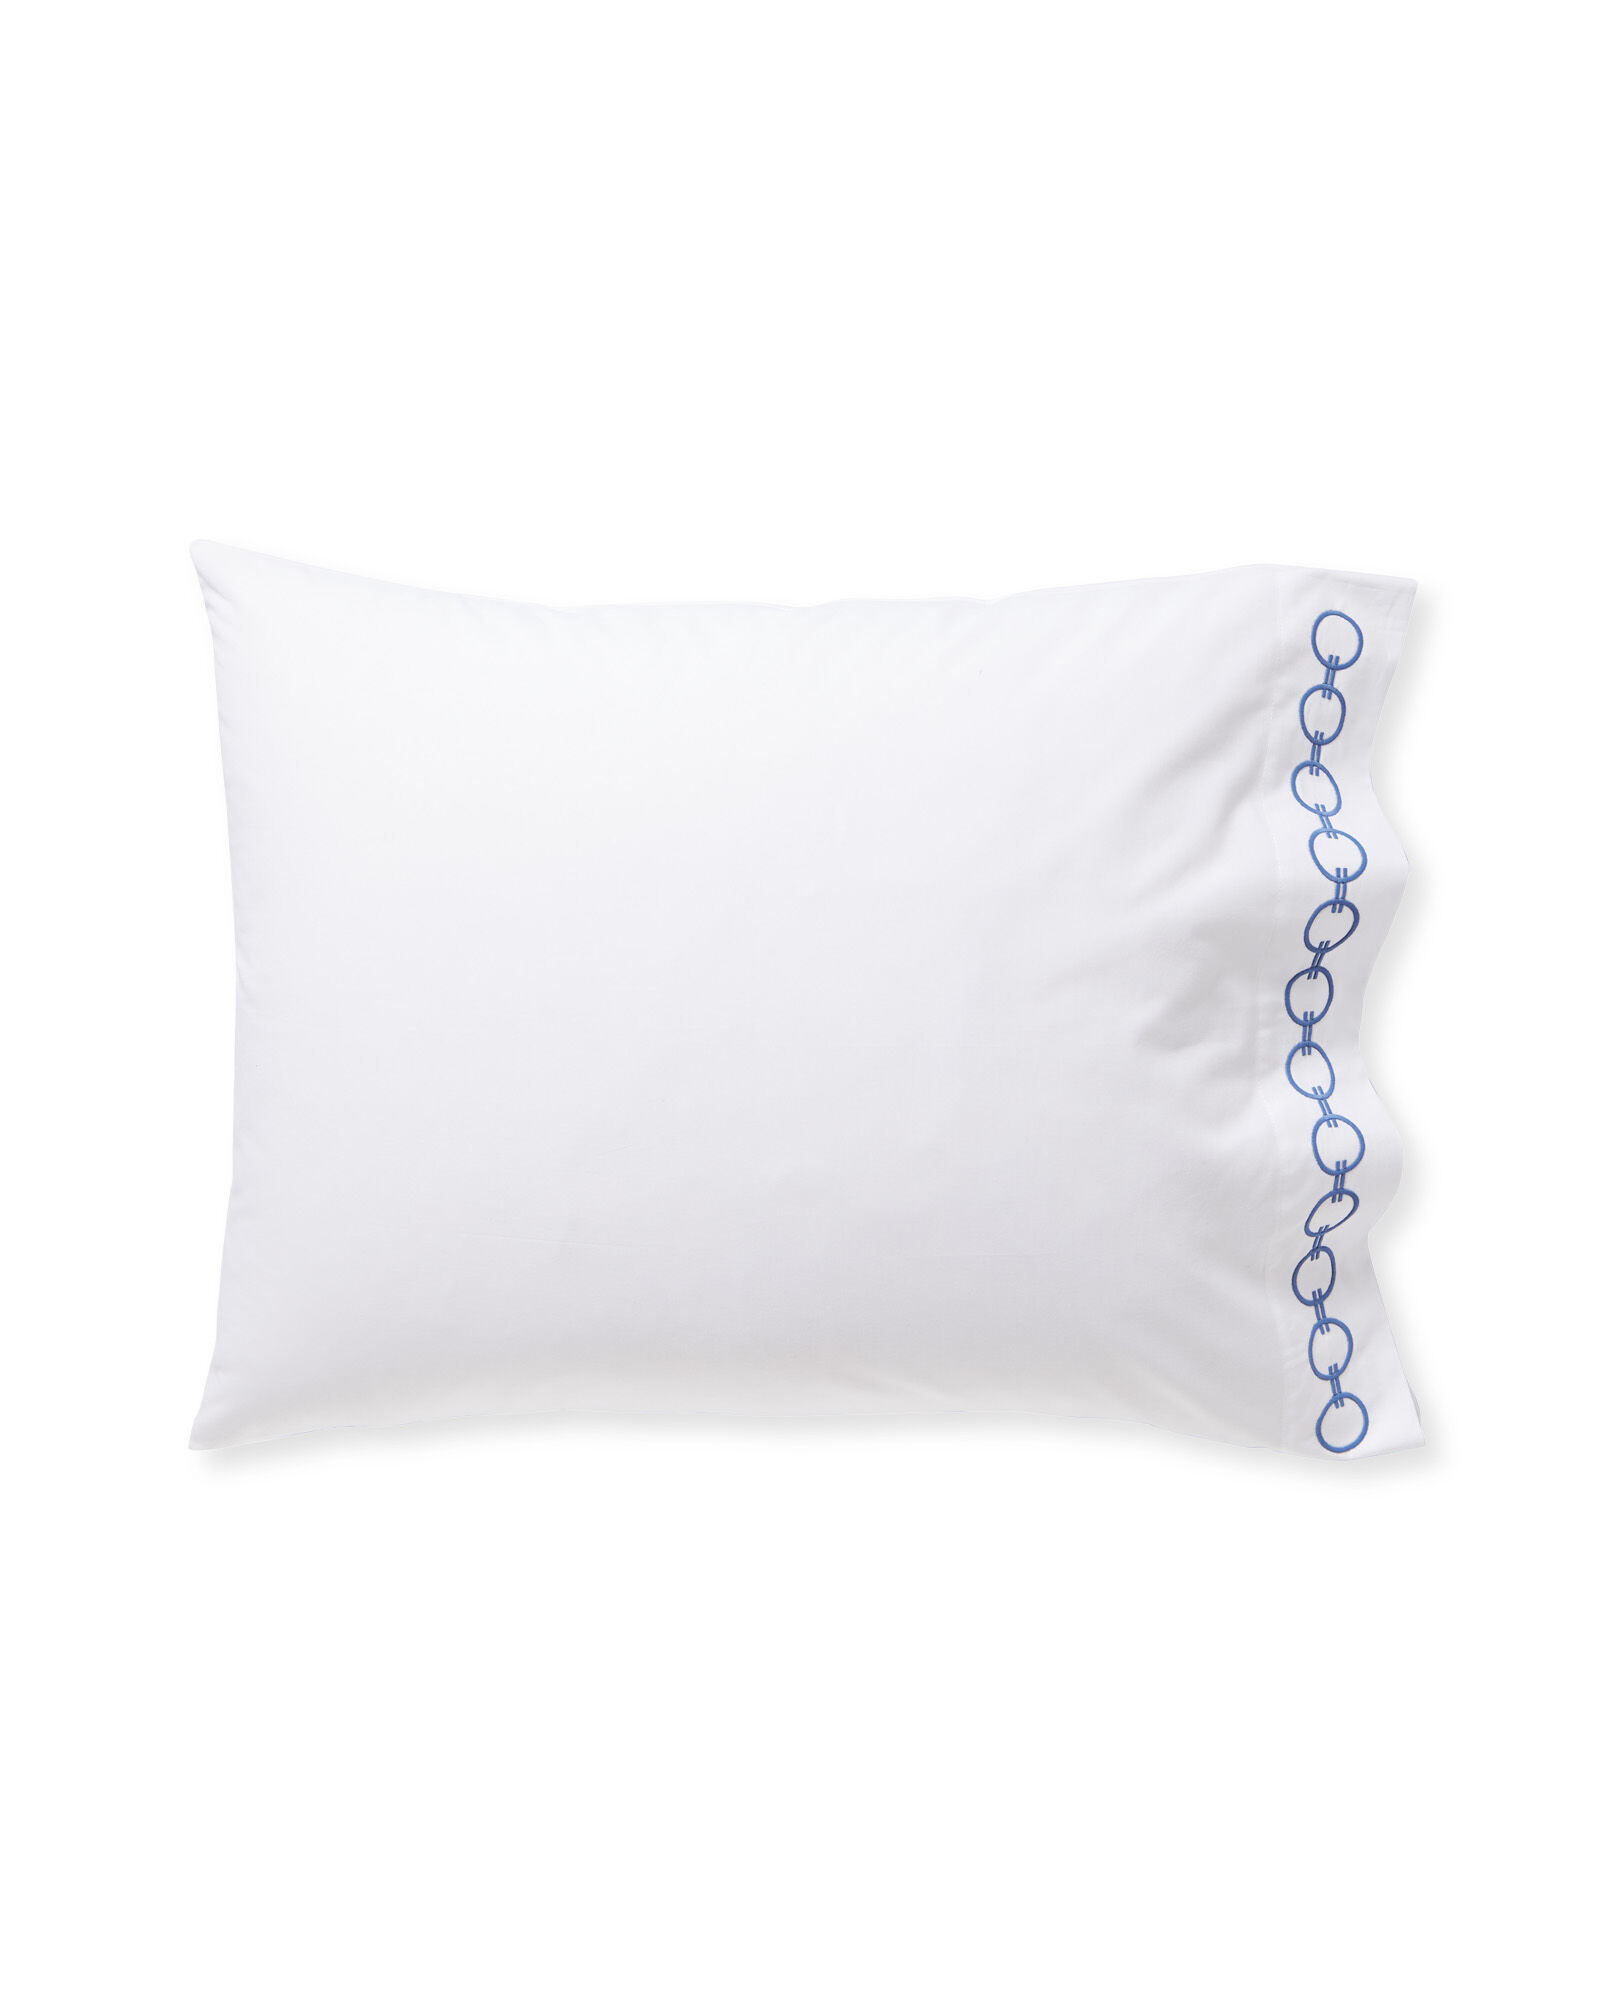 Bel Air Pillowcases (Set of 2), French Blue